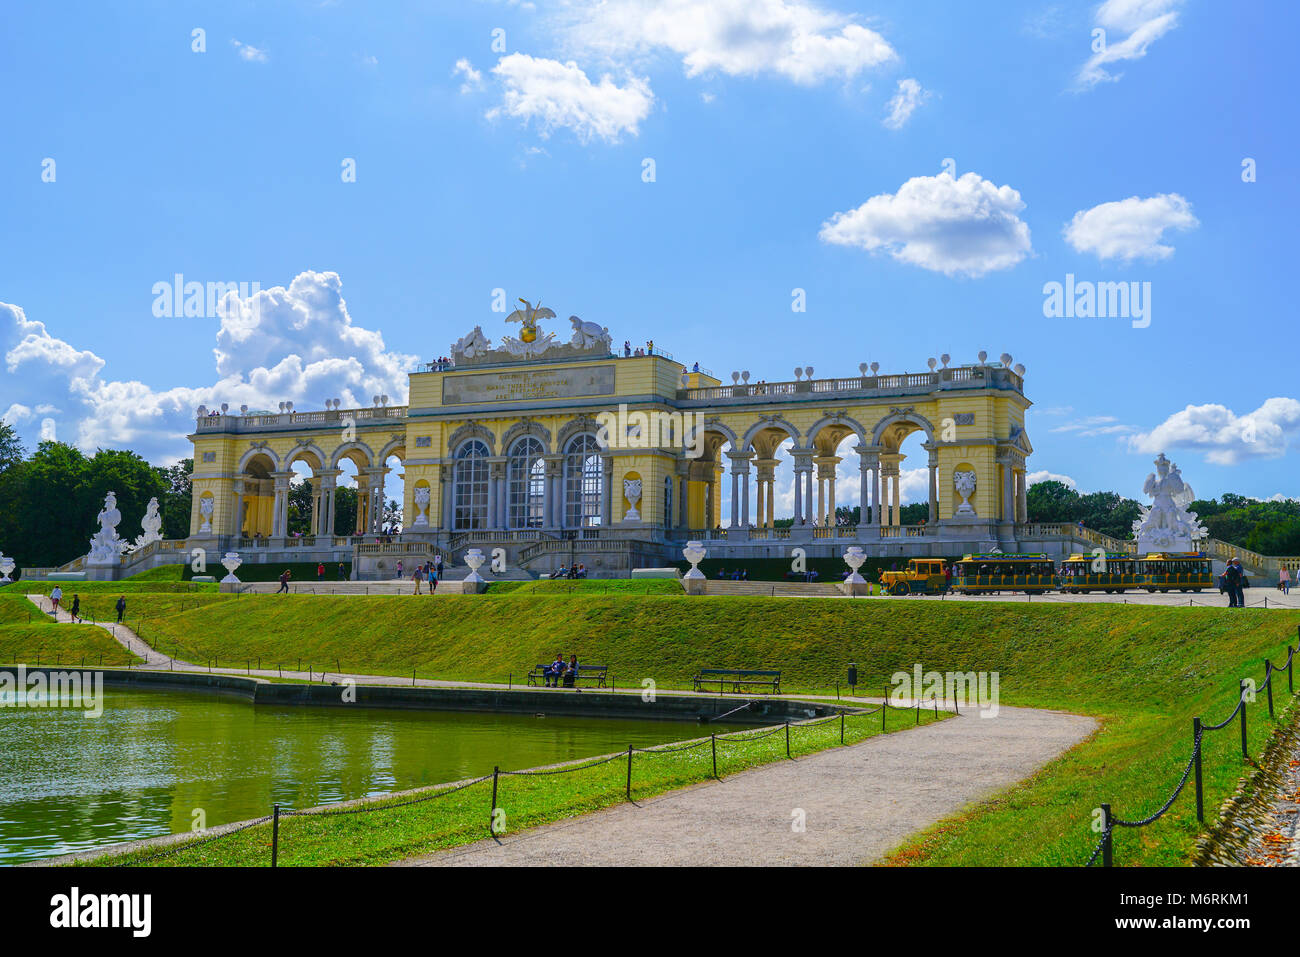 VIENNA,AUSTRIA - SEPTEMBER 4 2017; Structure known a the Gloriette in Schonbrunn Palace grounds comprising long - Stock Image